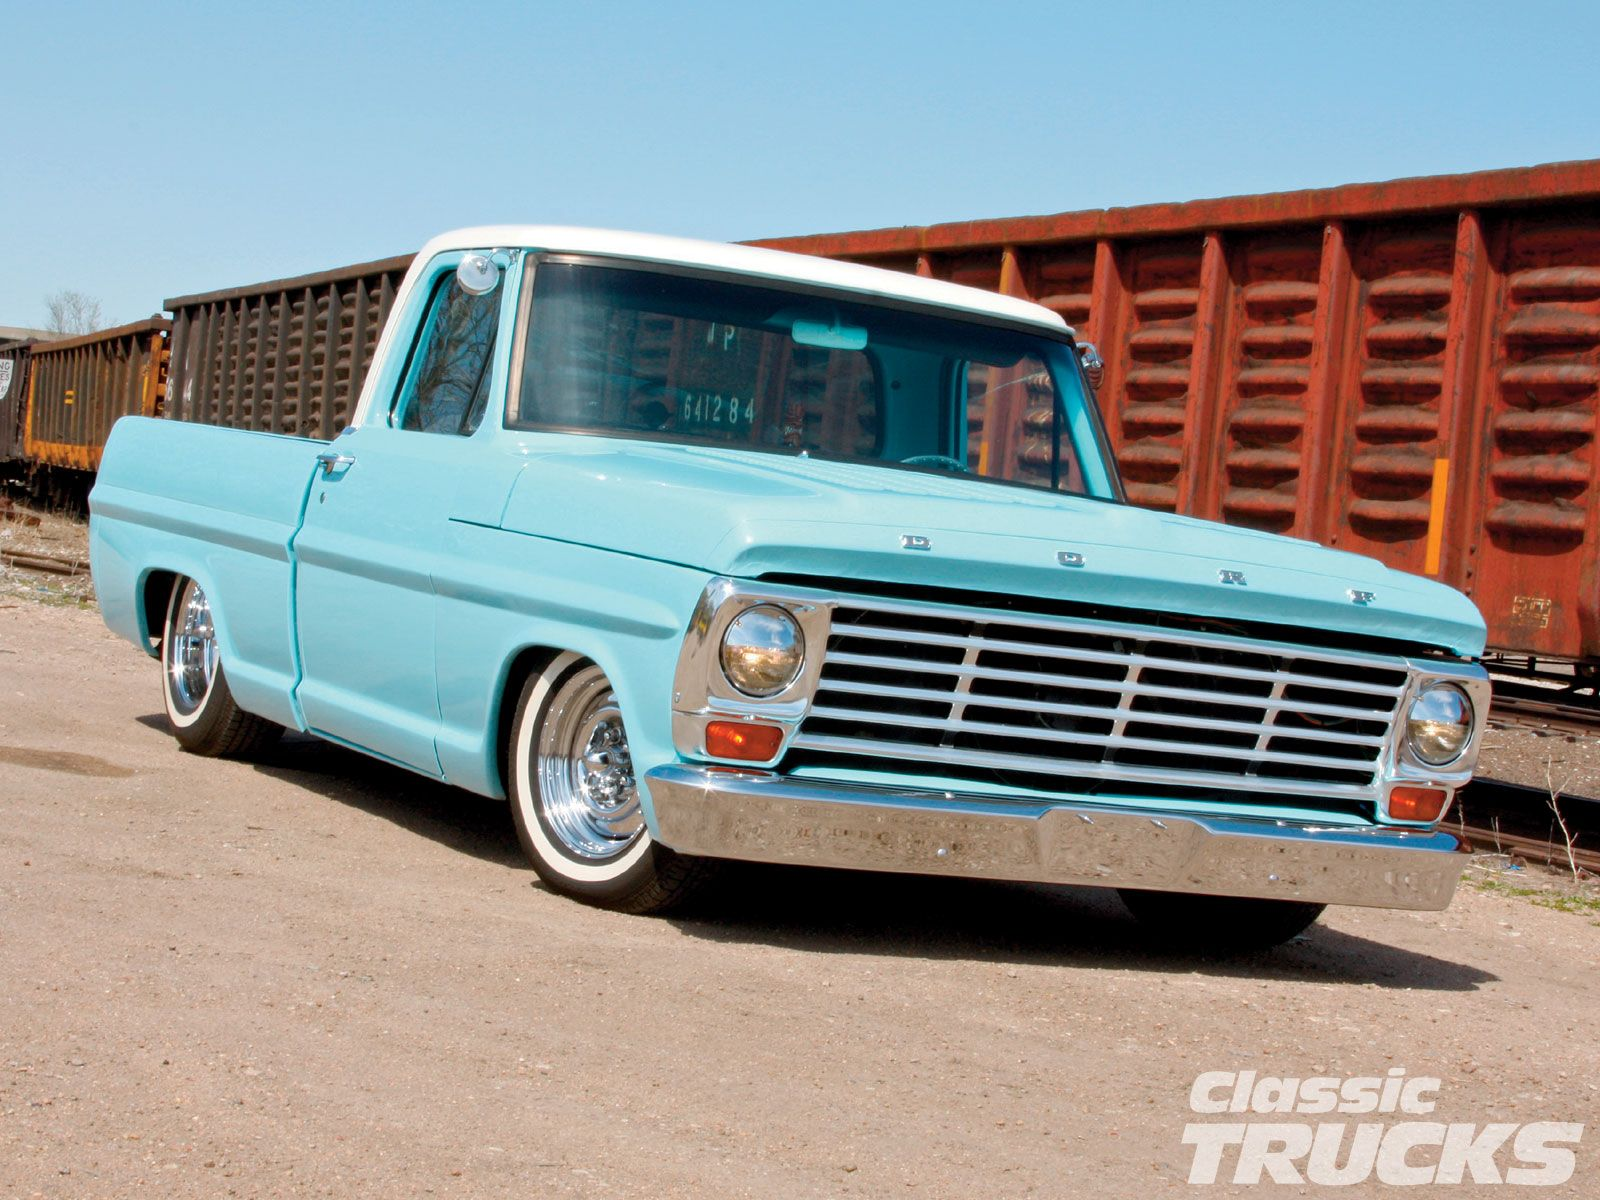 1956 chevy tattoo submited images pic2fly - 1967 Ford F100 Maintenance Restoration Of Old Vintage Vehicles The Material For New